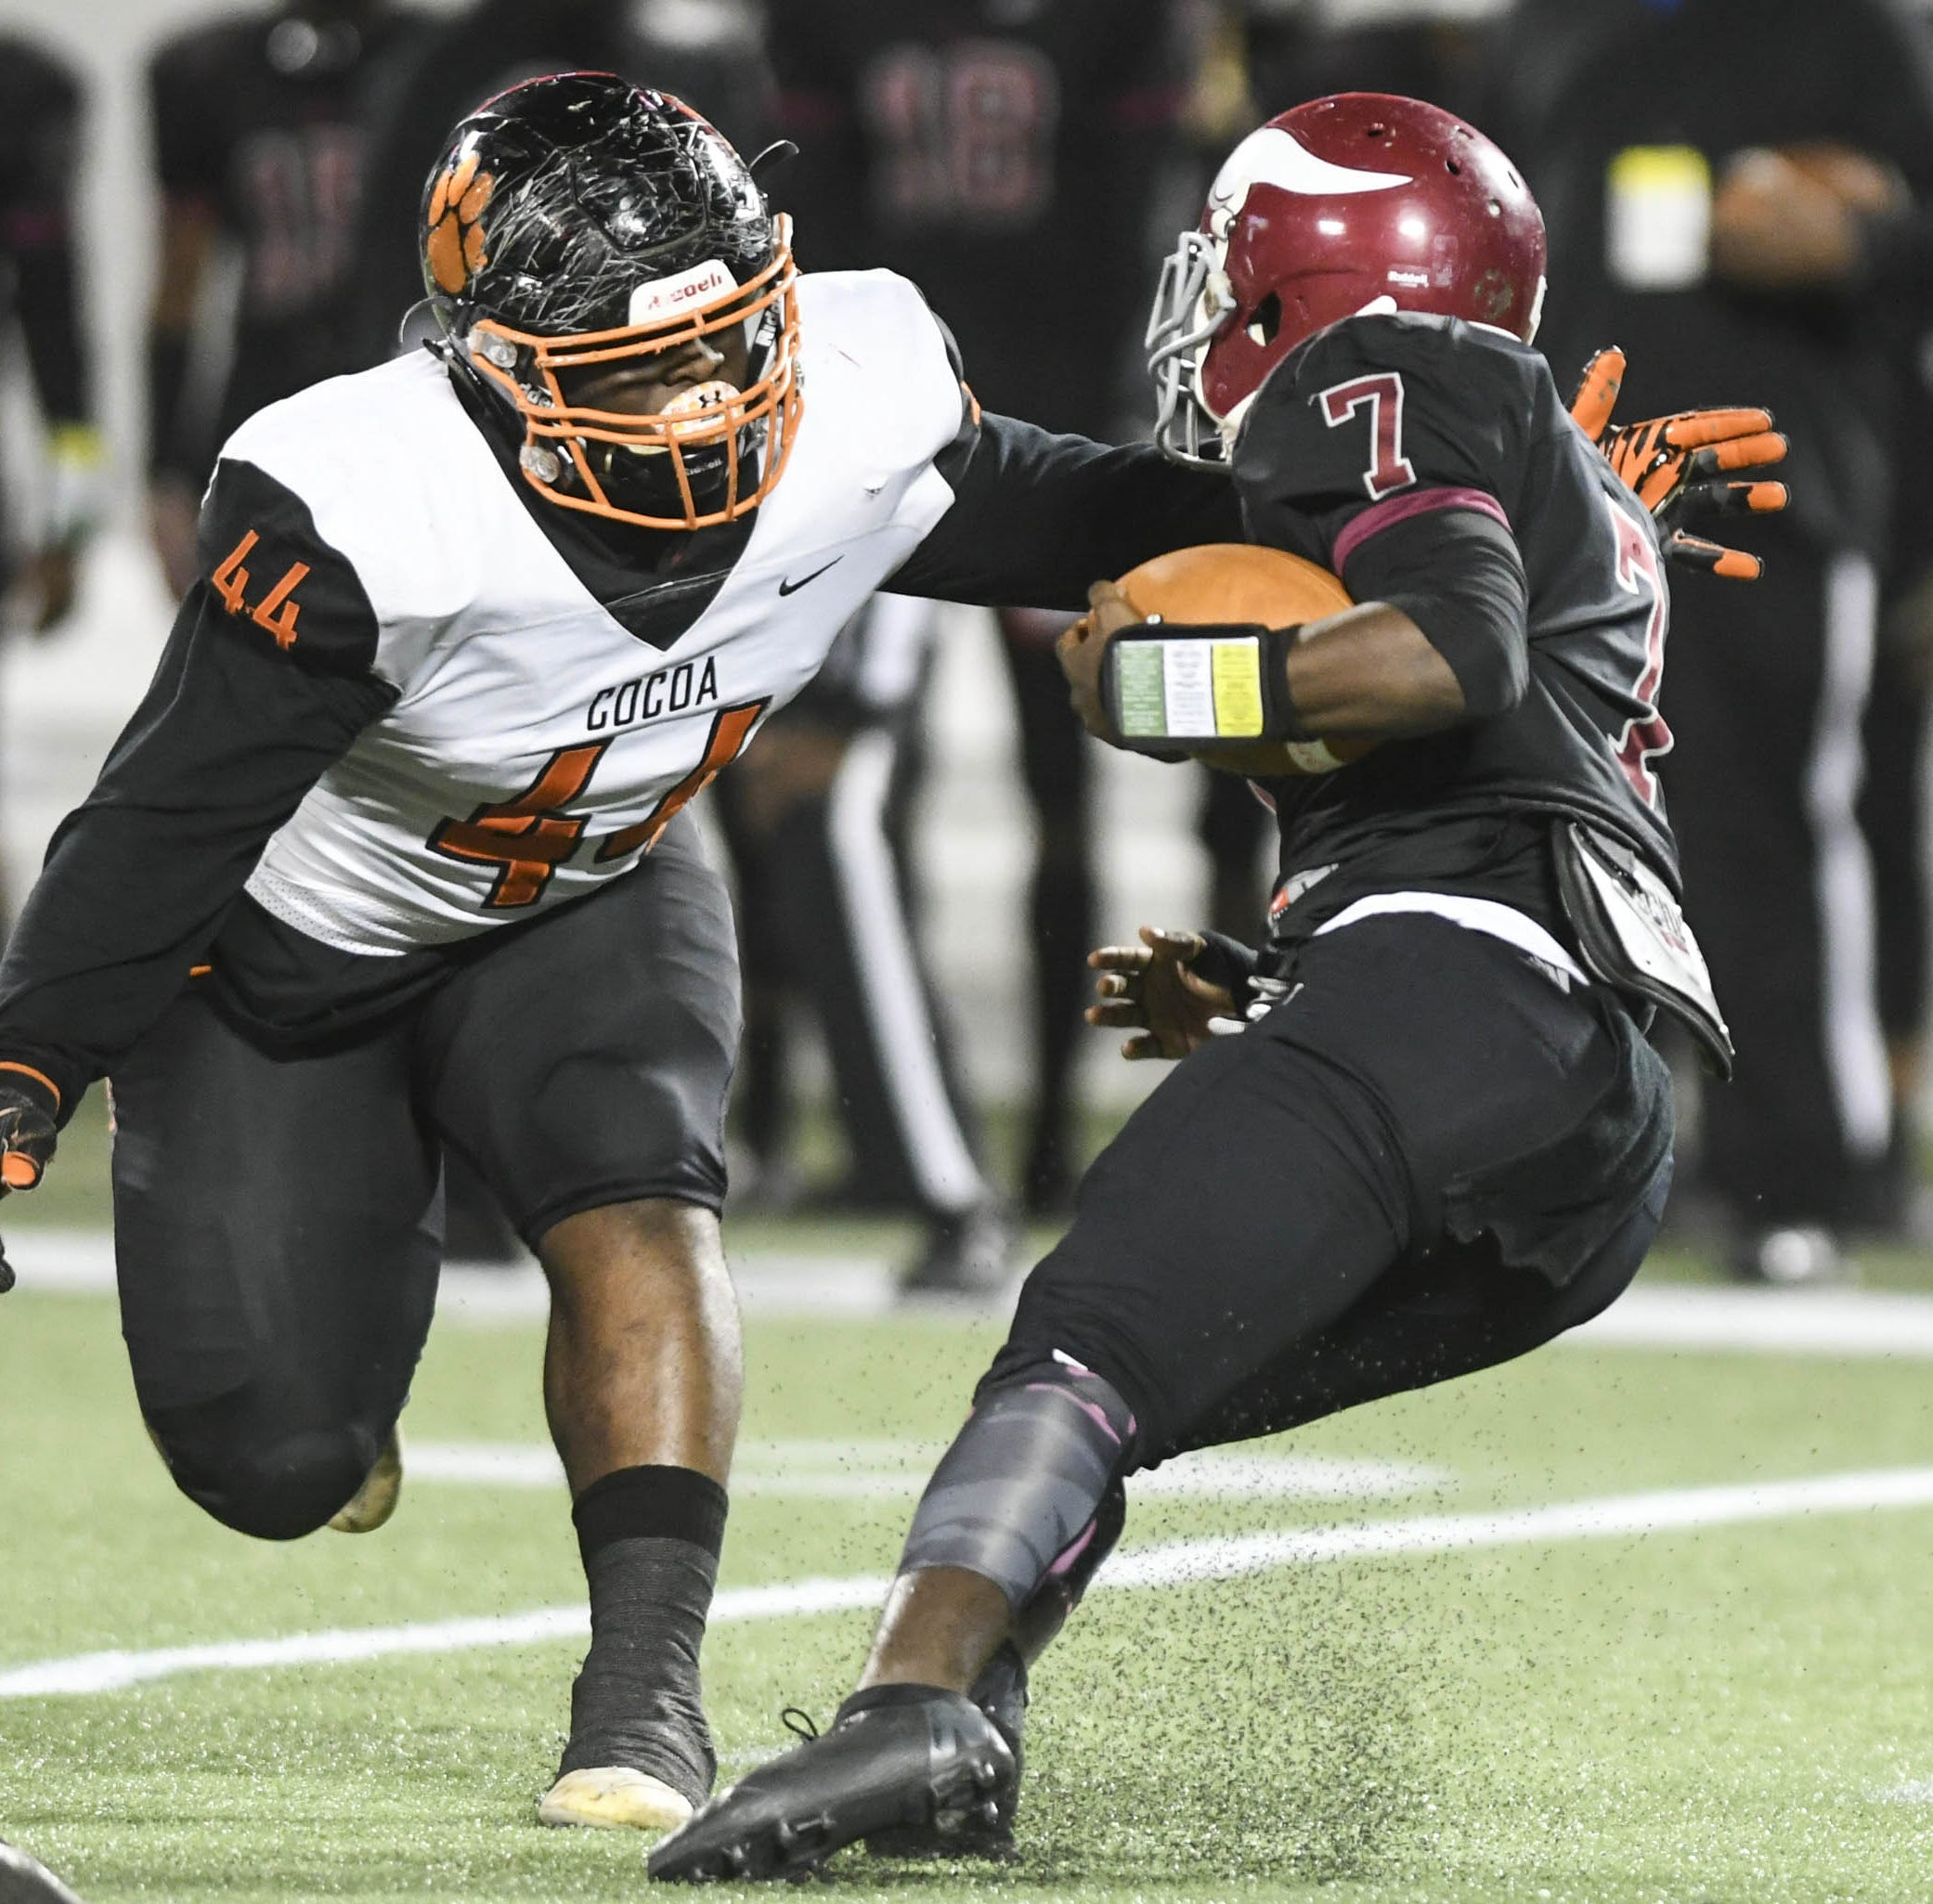 Missed opportunities cost Cocoa in state championship game